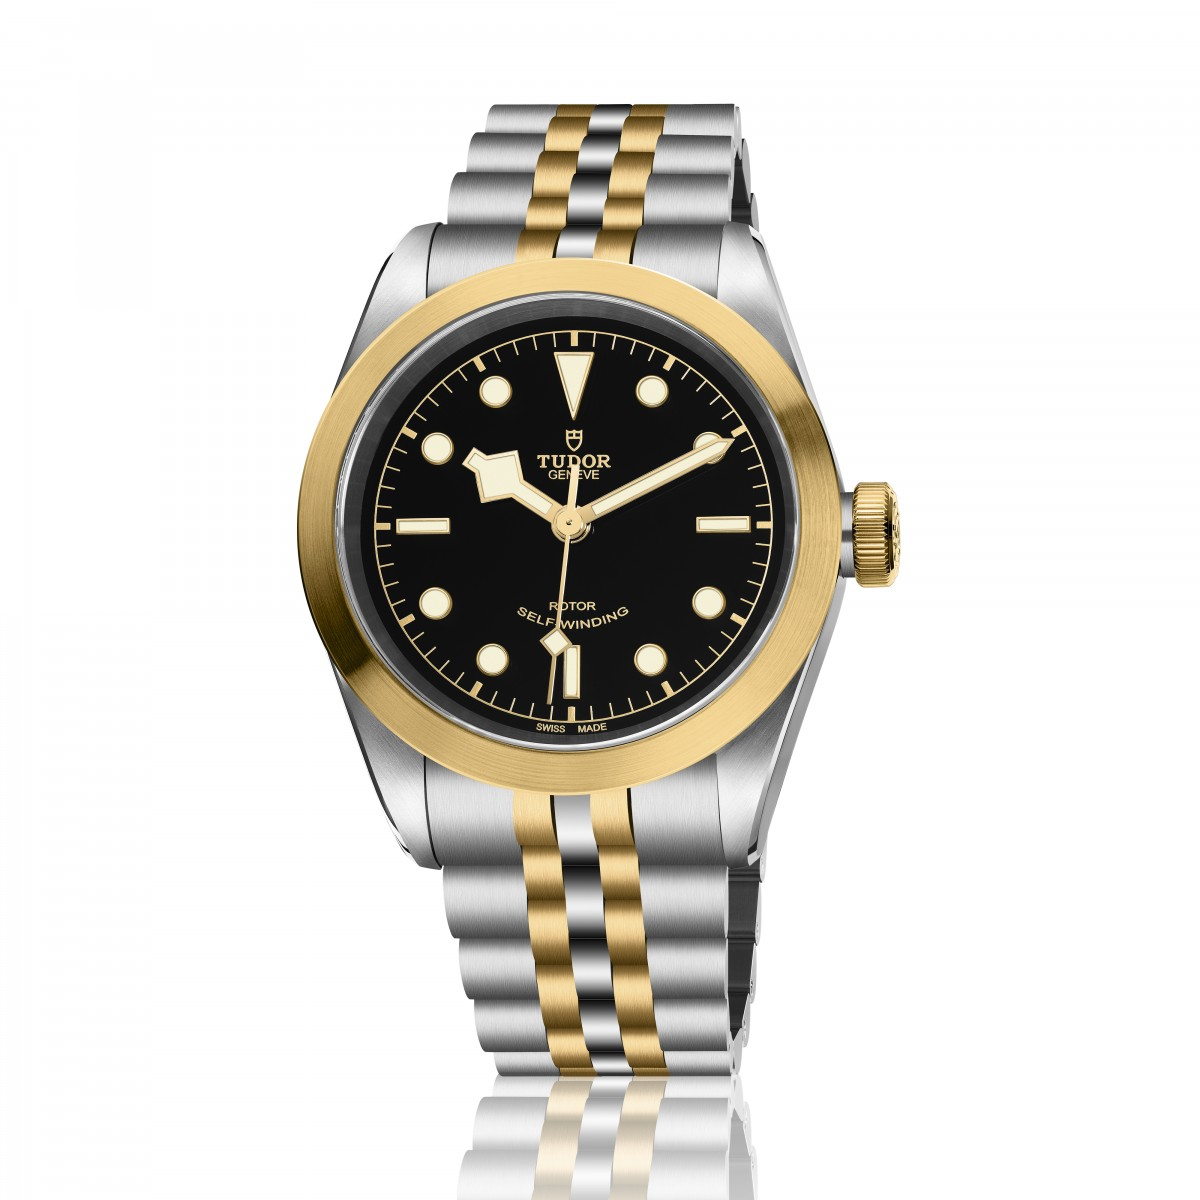 TUDOR Black Bay S&G 2019 Baselworld